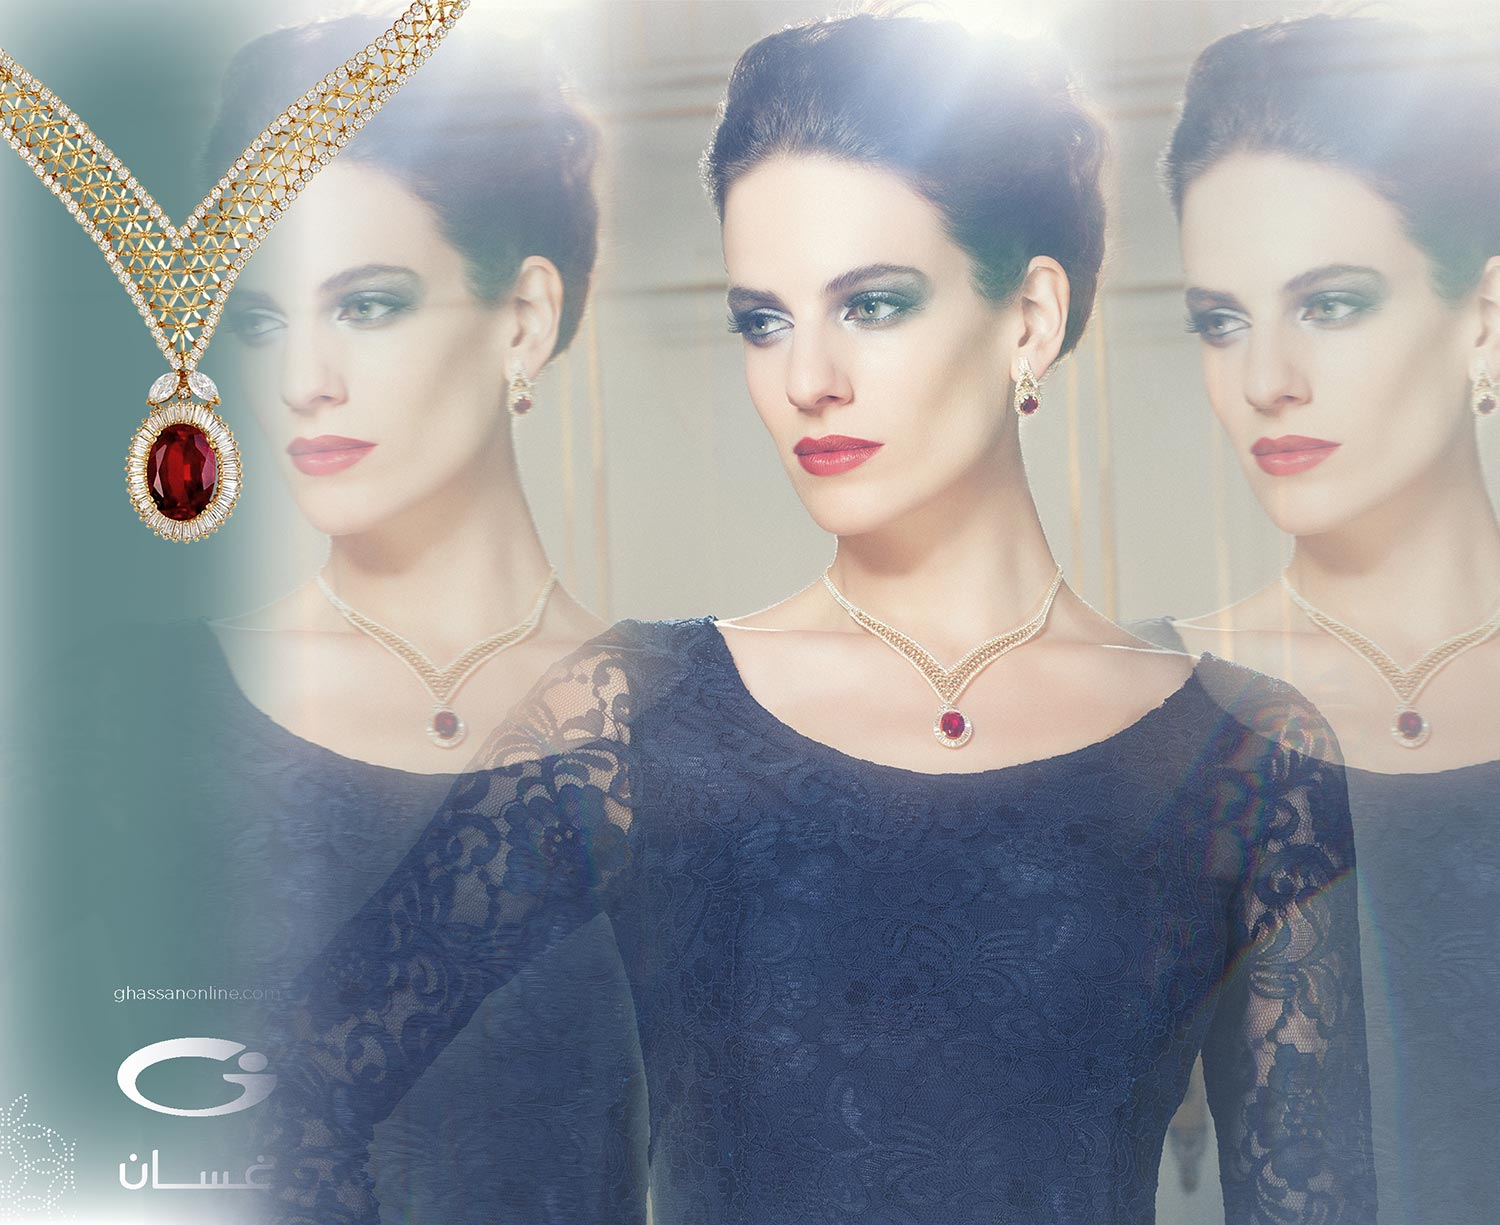 Ghassan Jewellery Campaign